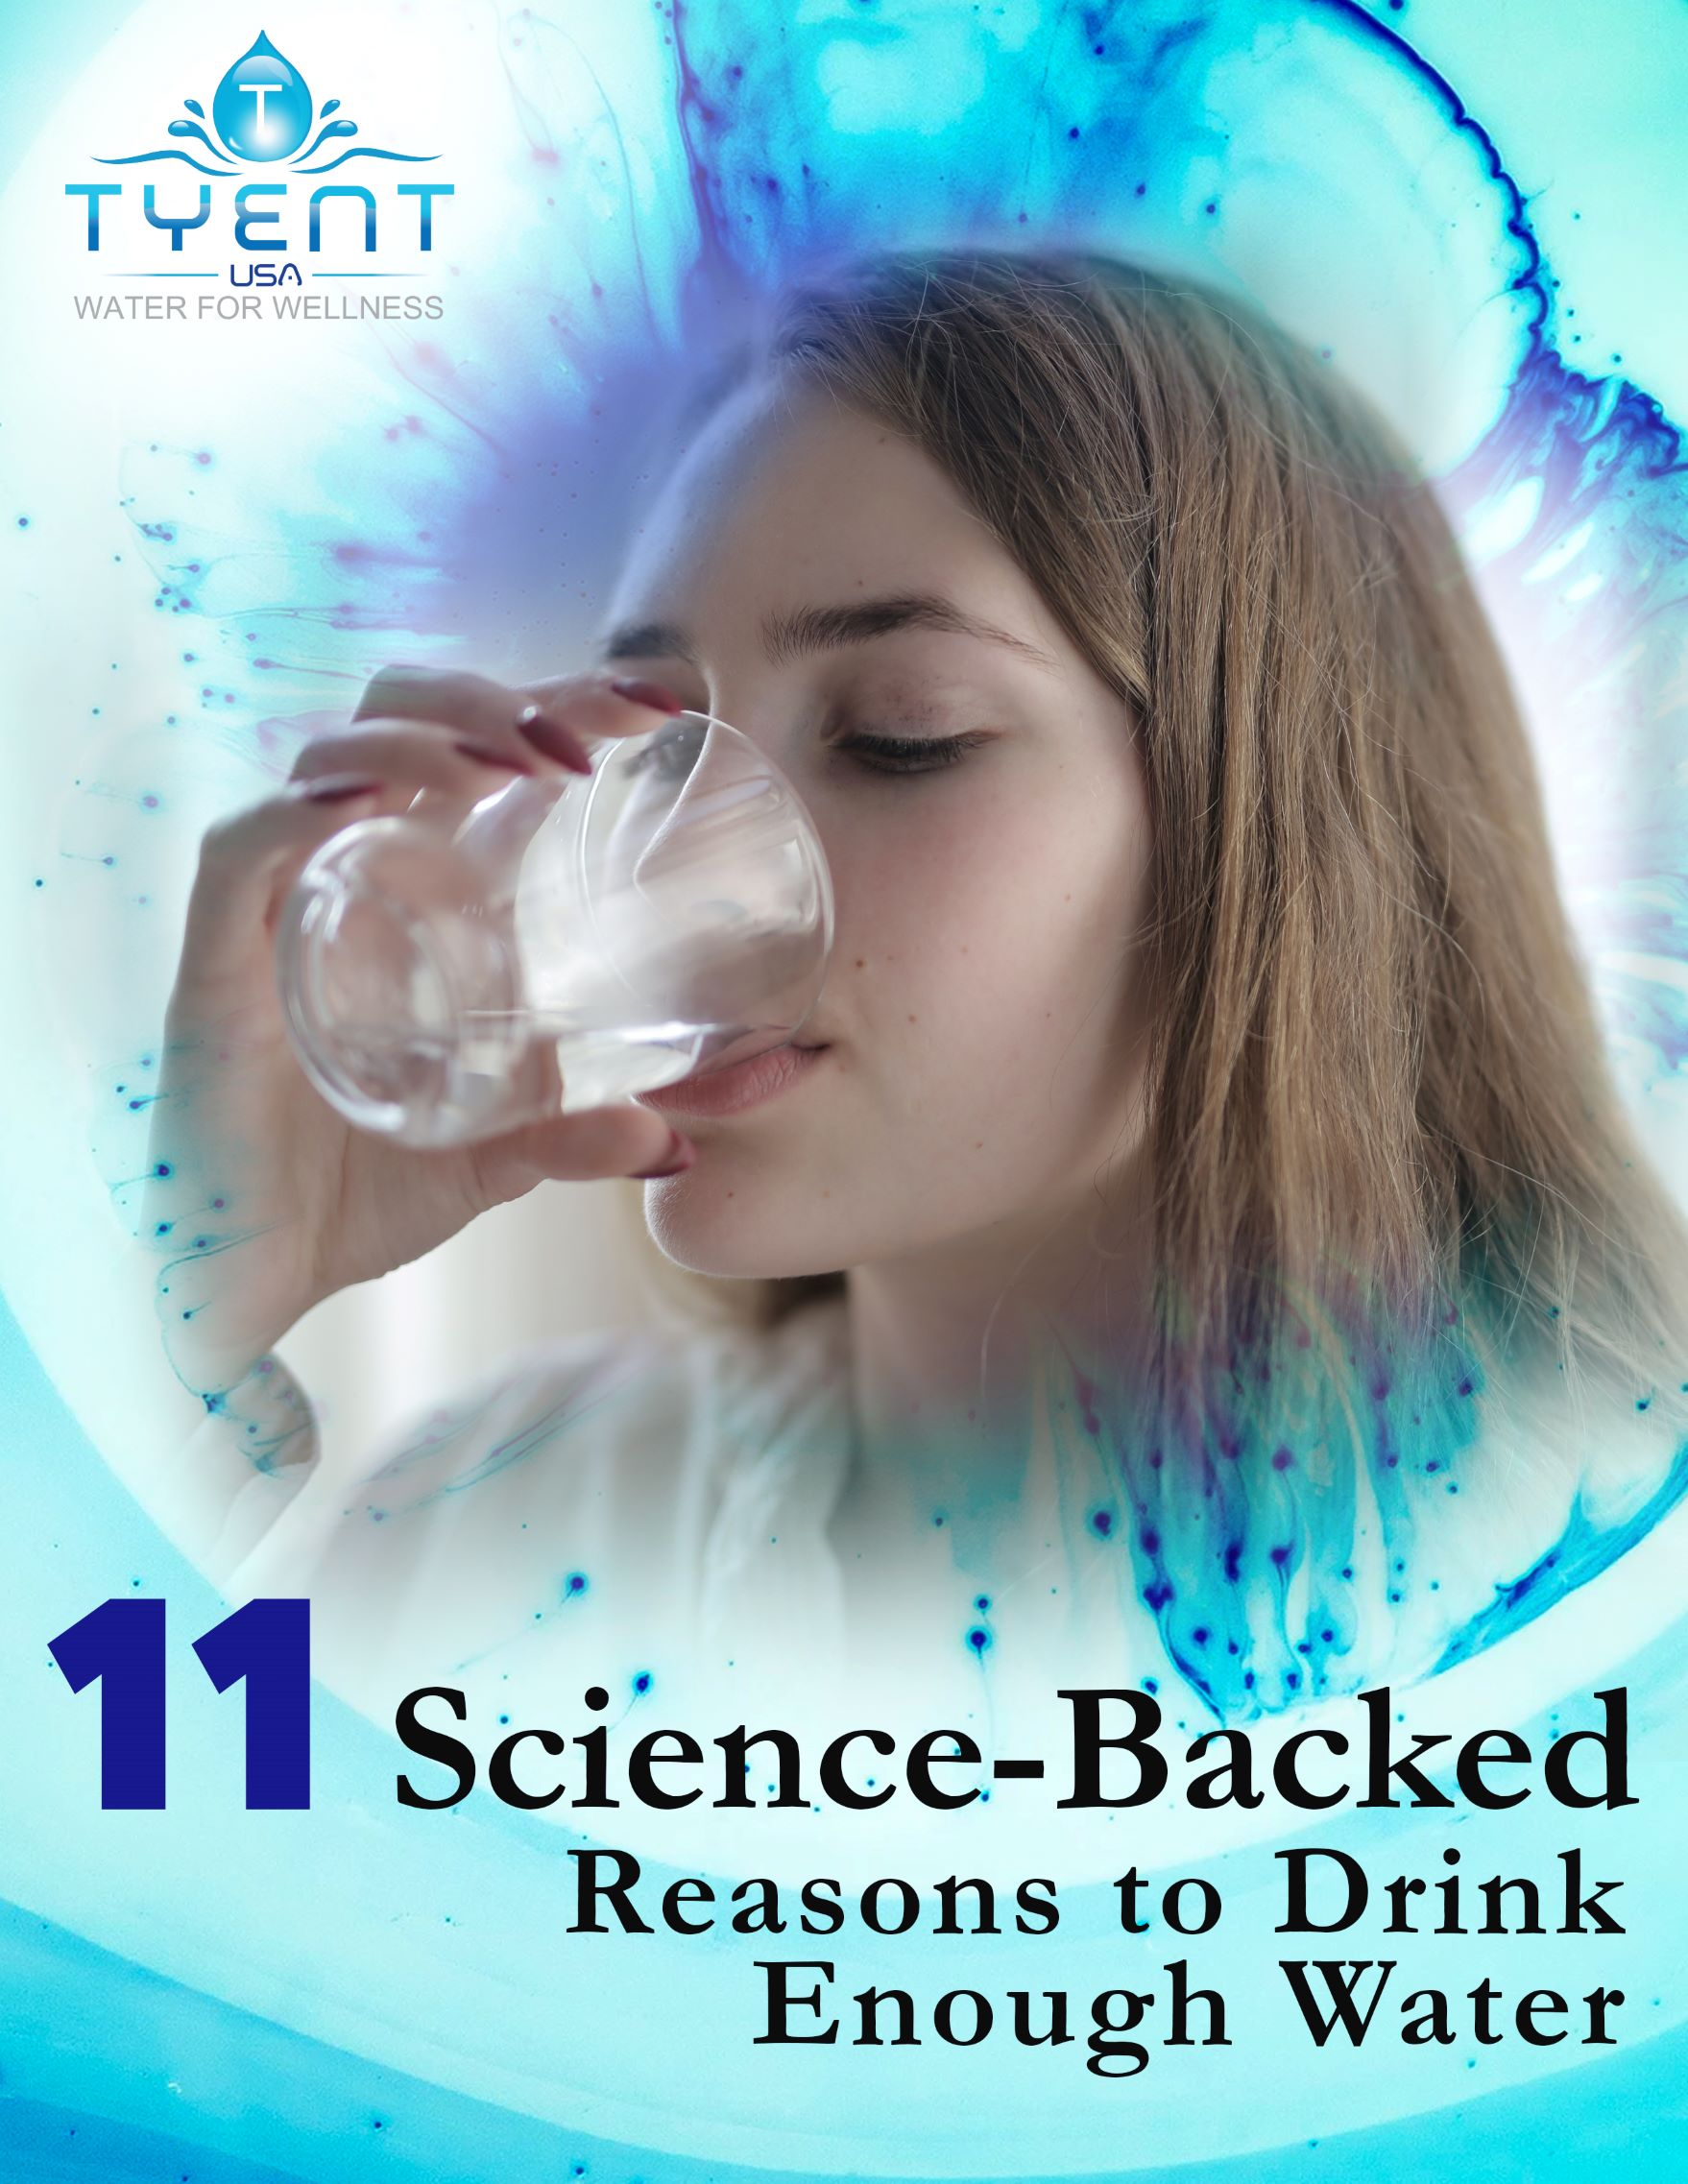 11 Science-Backed Reasons to Drink Enough Water